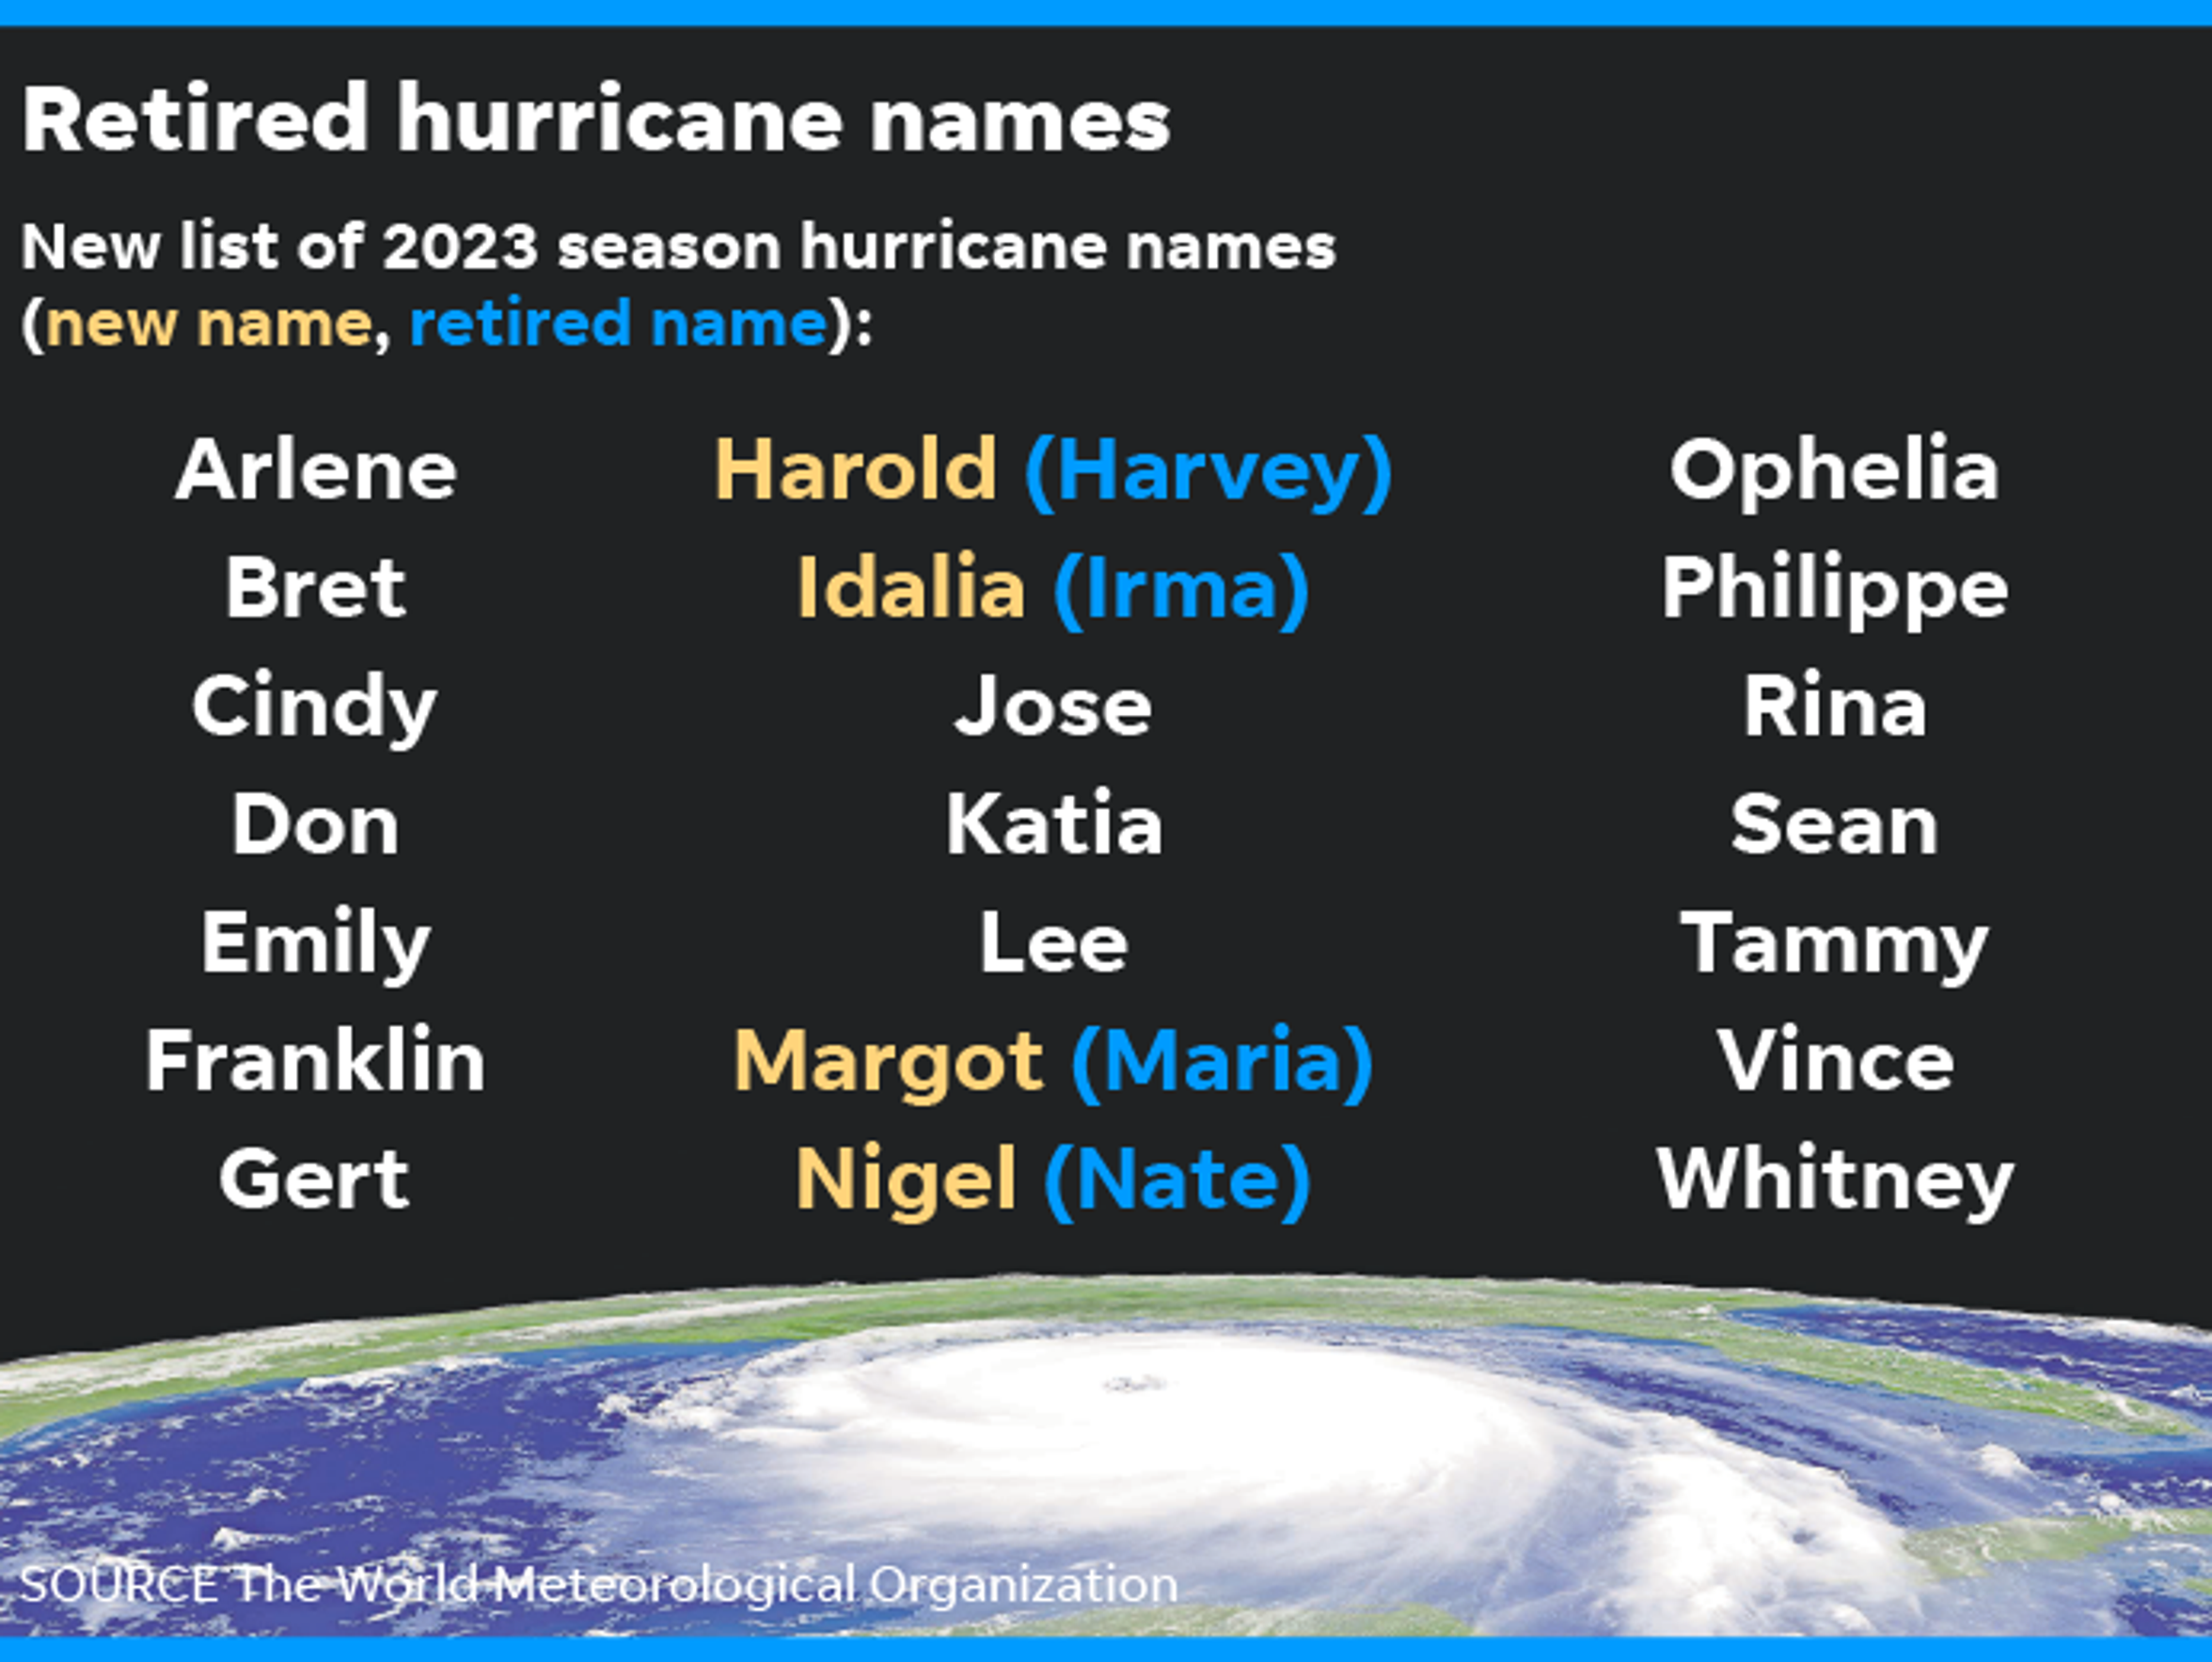 041218-retired-hurricane-names_Online